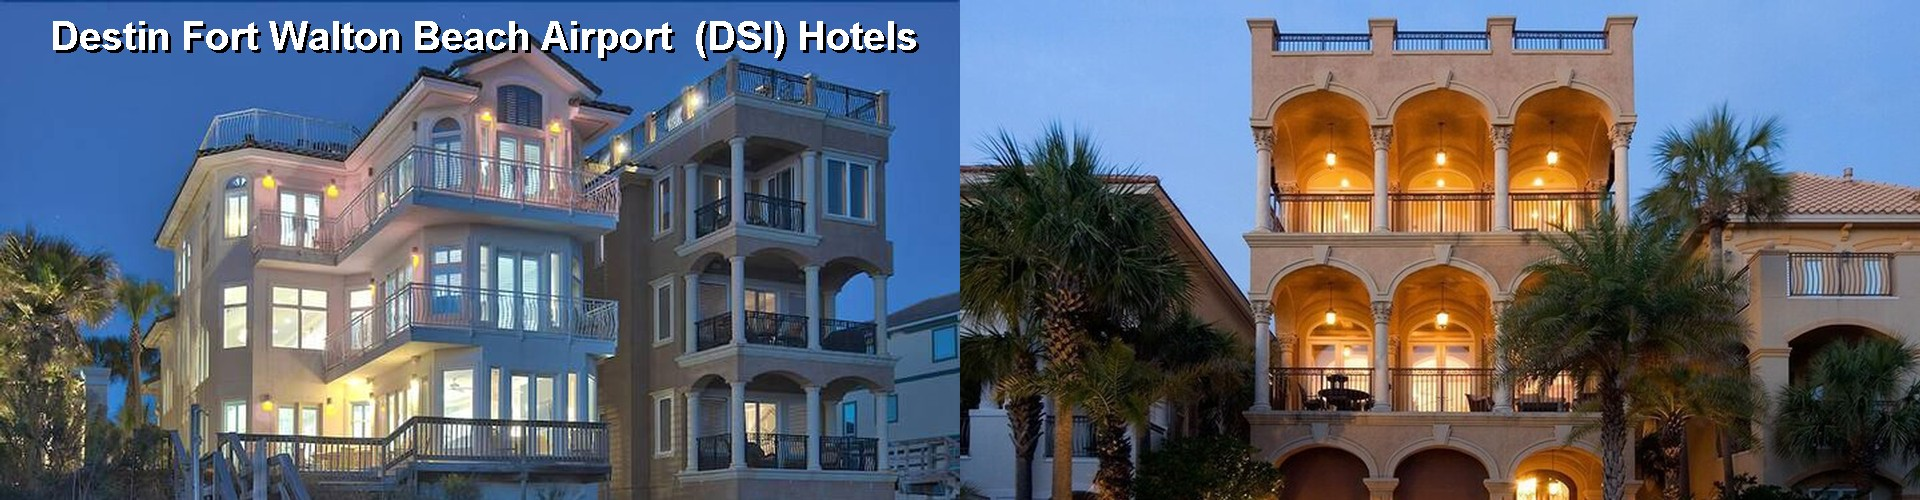 5 Best Hotels near Destin Fort Walton Beach Airport (DSI)